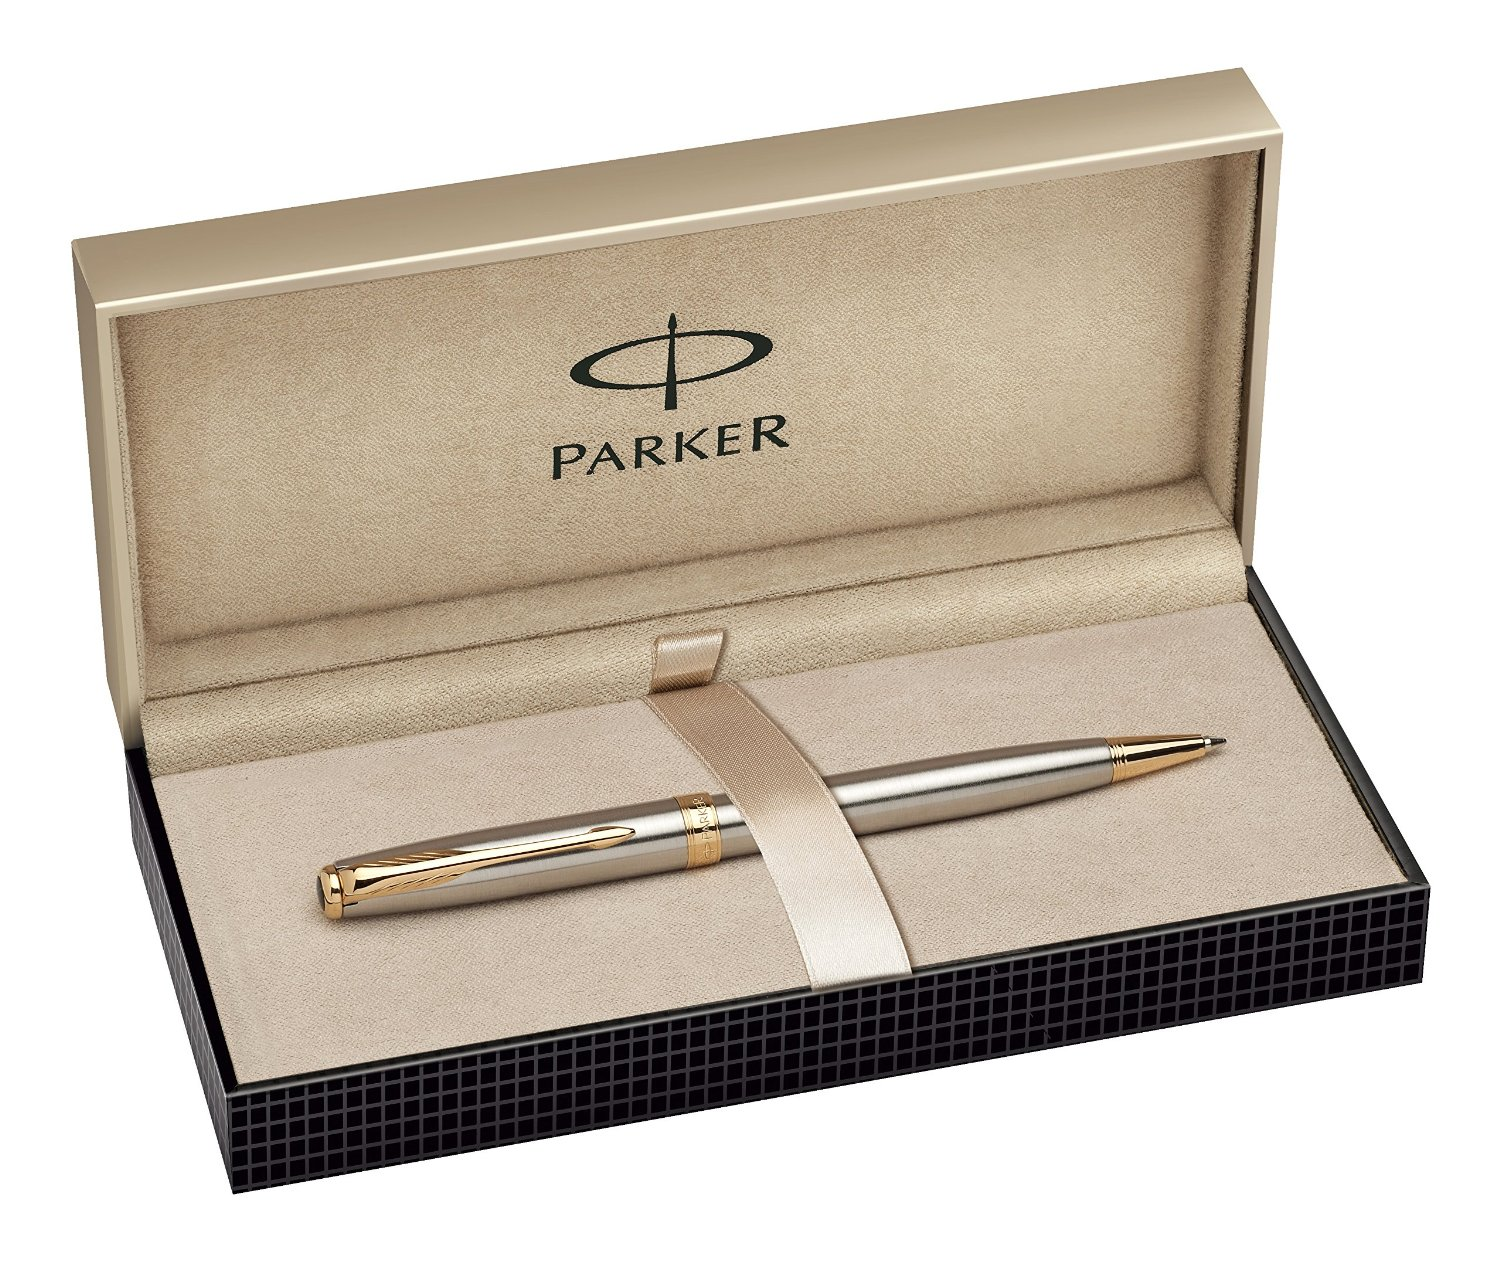 Bút Parker Sonnet Stainless Steel Ballpoint Pen with Gold Trim